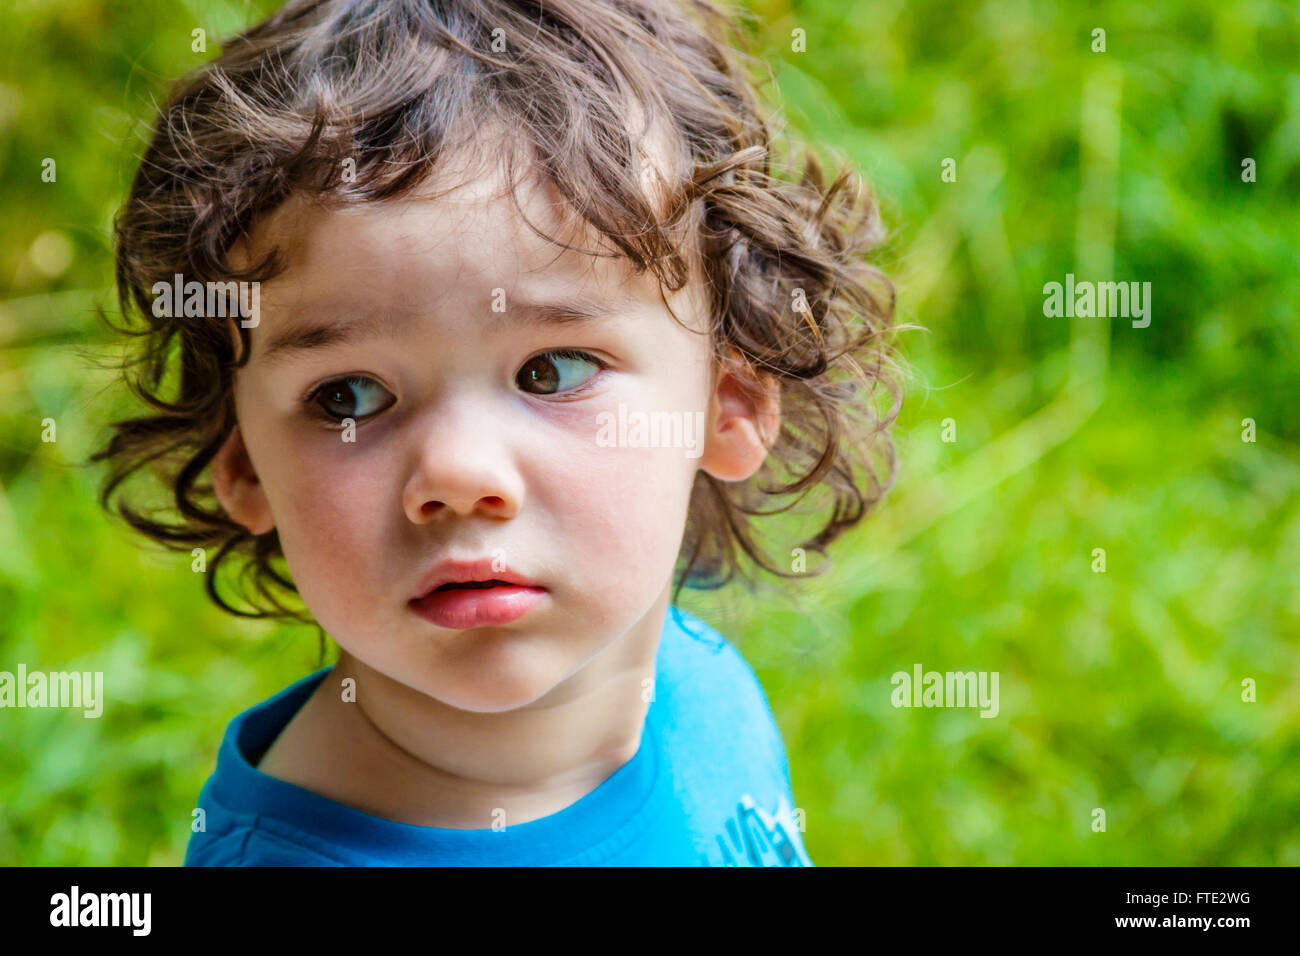 Portrait of Young Boy, 3 years - Stock Image